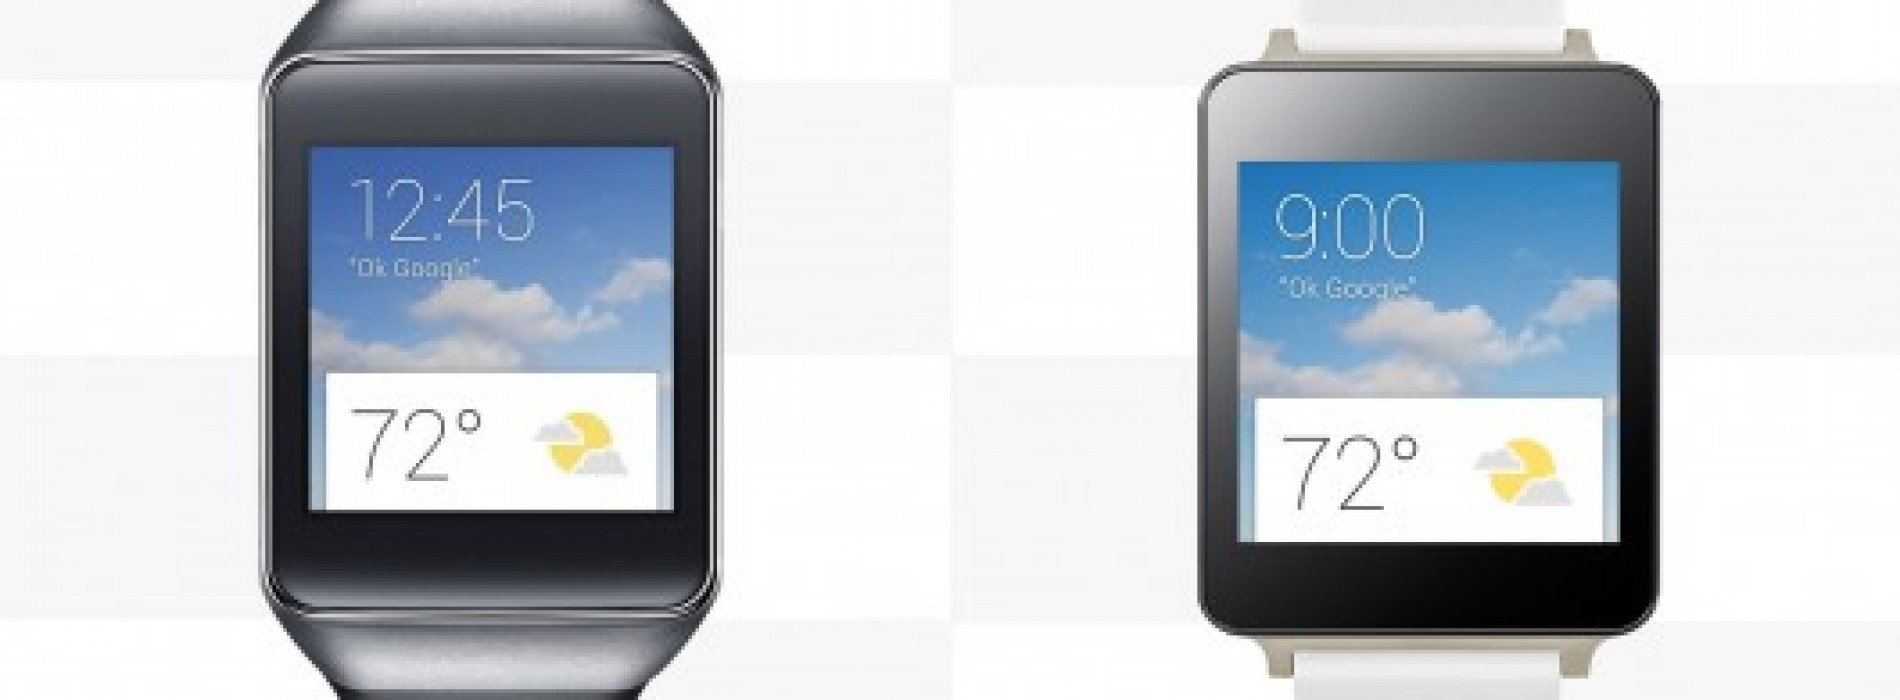 Both LG G Watch and Samsung Gear Live are now available at BestBuy